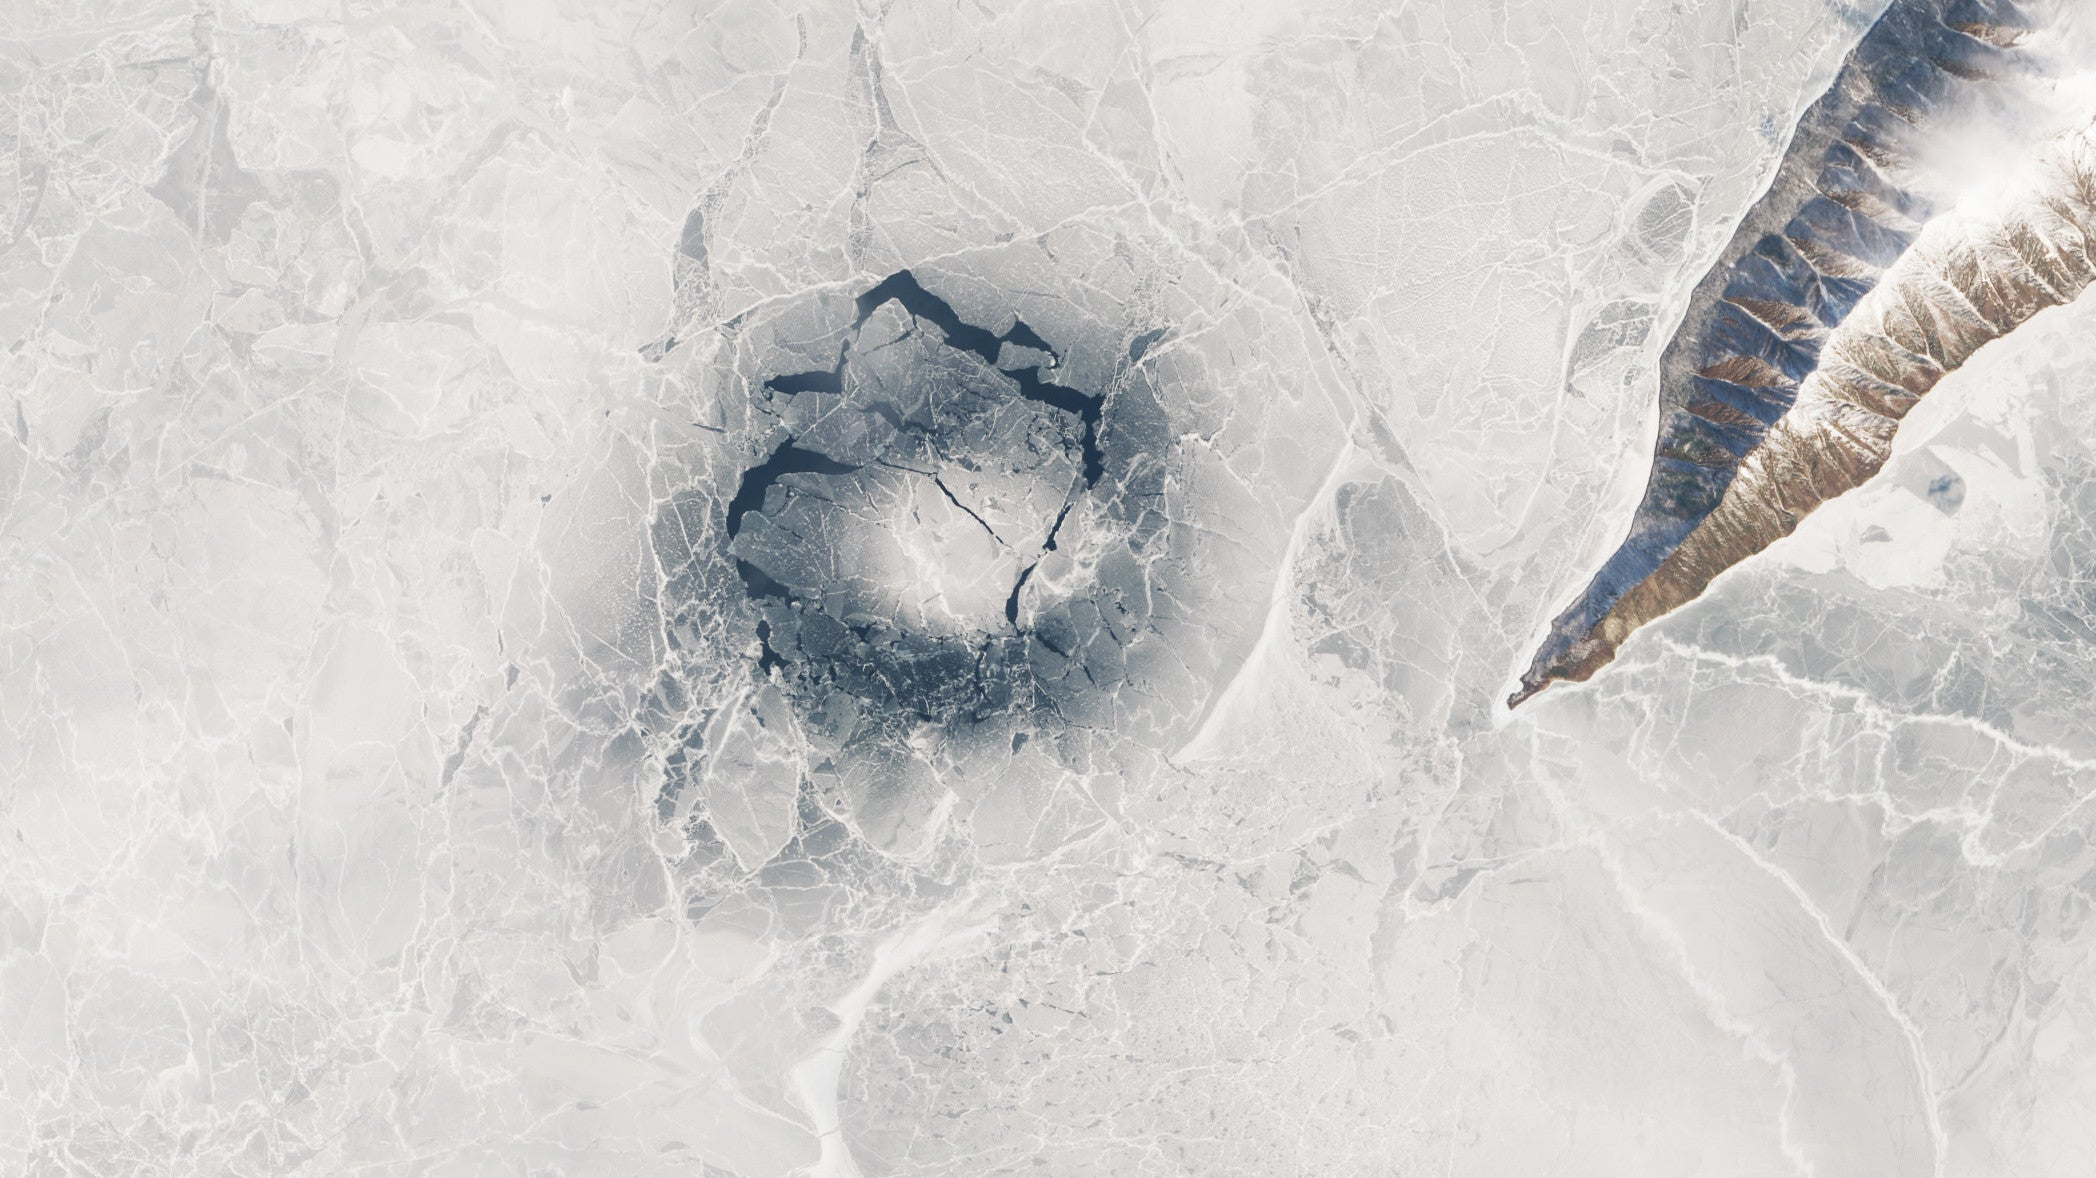 Cool Discovery Could Finally Explain Gigantic Ice Rings Found On Siberian Lake